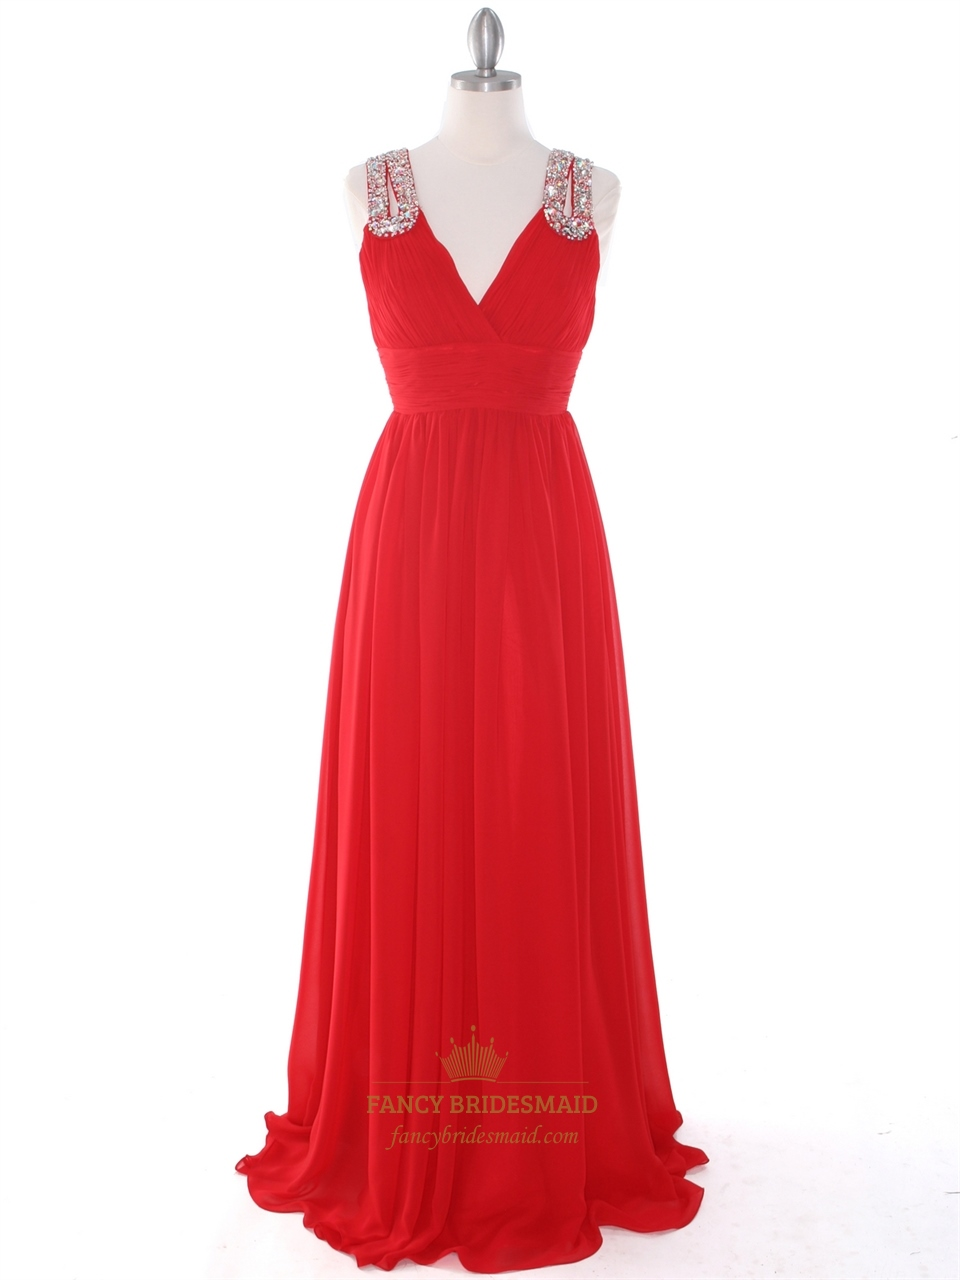 bf5f4ad94f Red A-Line V-Neck Chiffon Sleeveless Prom Dress With Rhinestone Straps SKU  -NW543